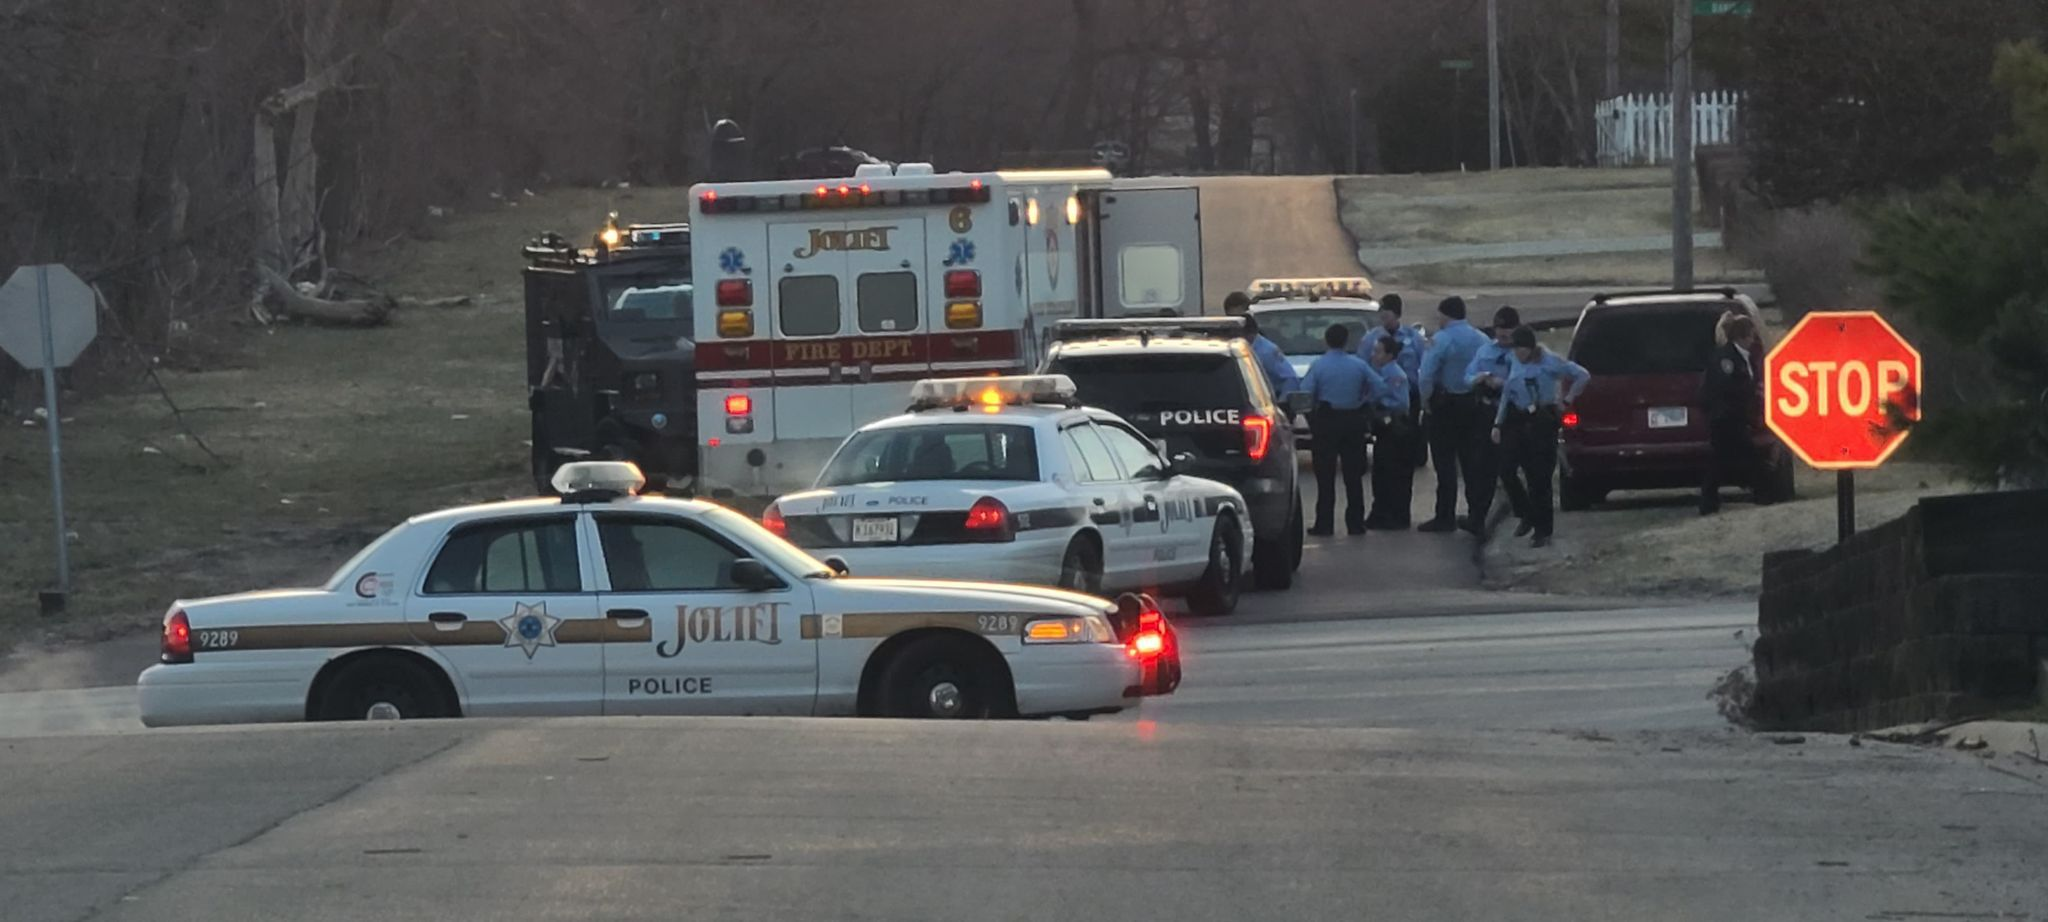 Joliet police responded to a report of a barricaded subject in a residence near the corner of Kinsey and Midland avenues early Saturday. Negotiators persuaded him to exit the home, according to police.